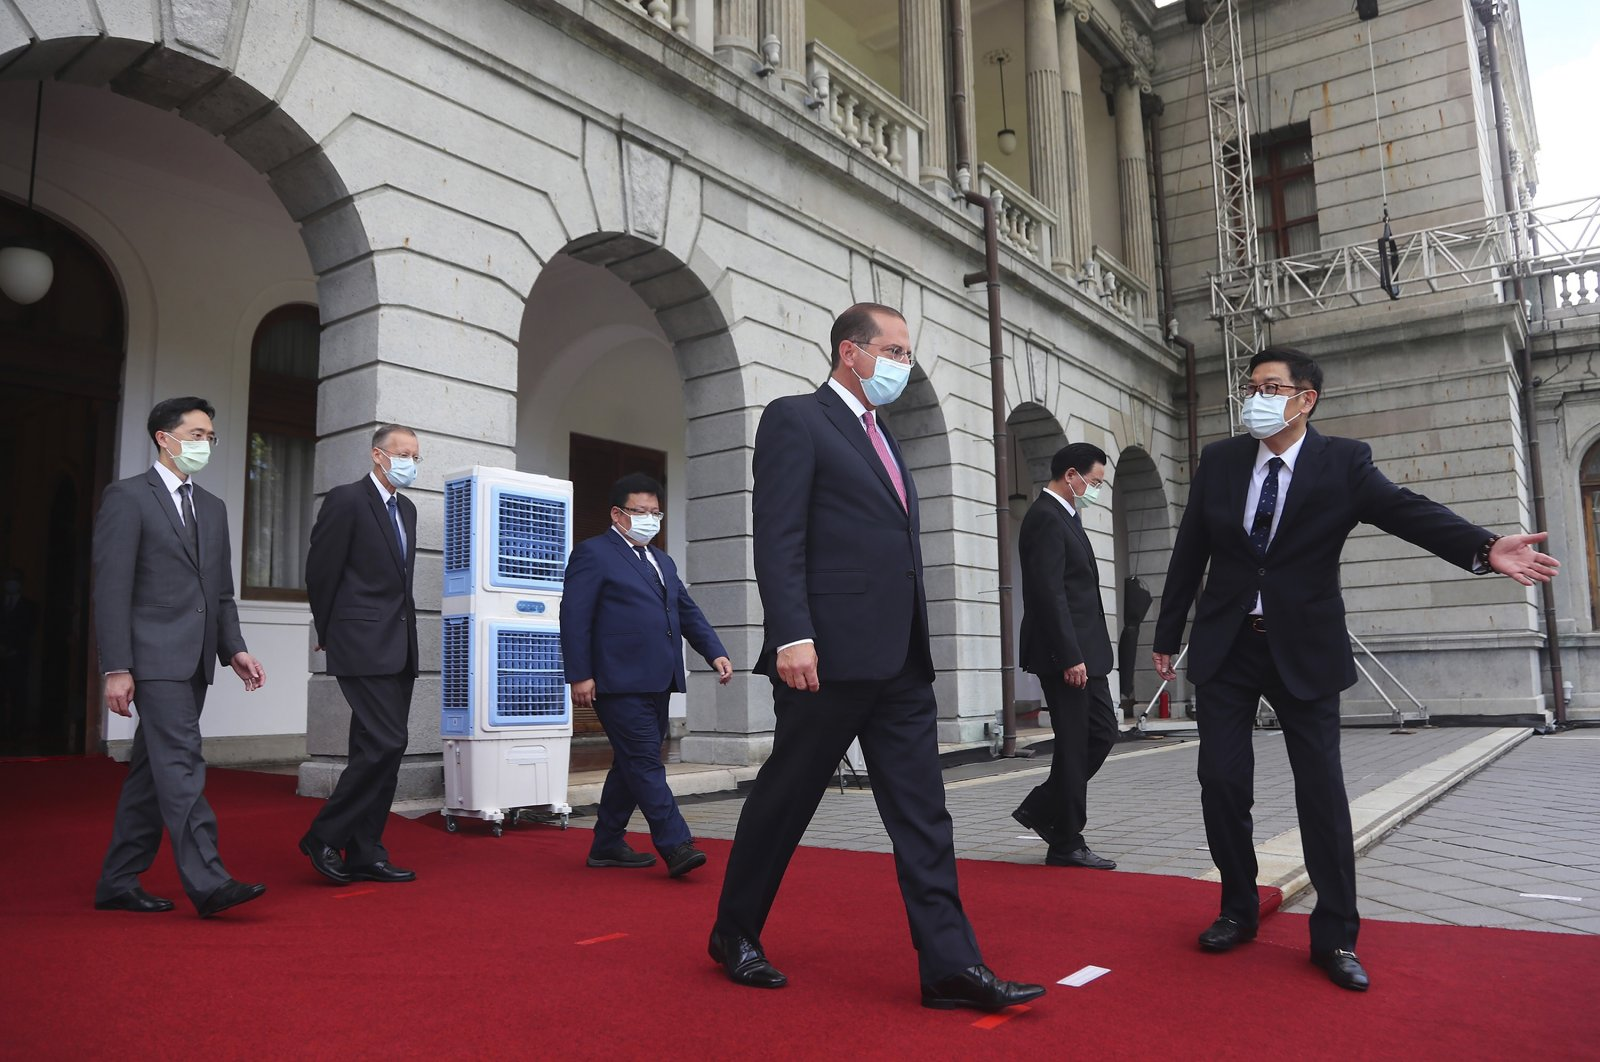 U.S. Health and Human Services Secretary Alex Azar (3rd R) arrives at a memorial for former Taiwanese President Lee Teng-hui in Taipei, Taiwan, Wednesday, Aug. 12, 2020. (AP Photo)